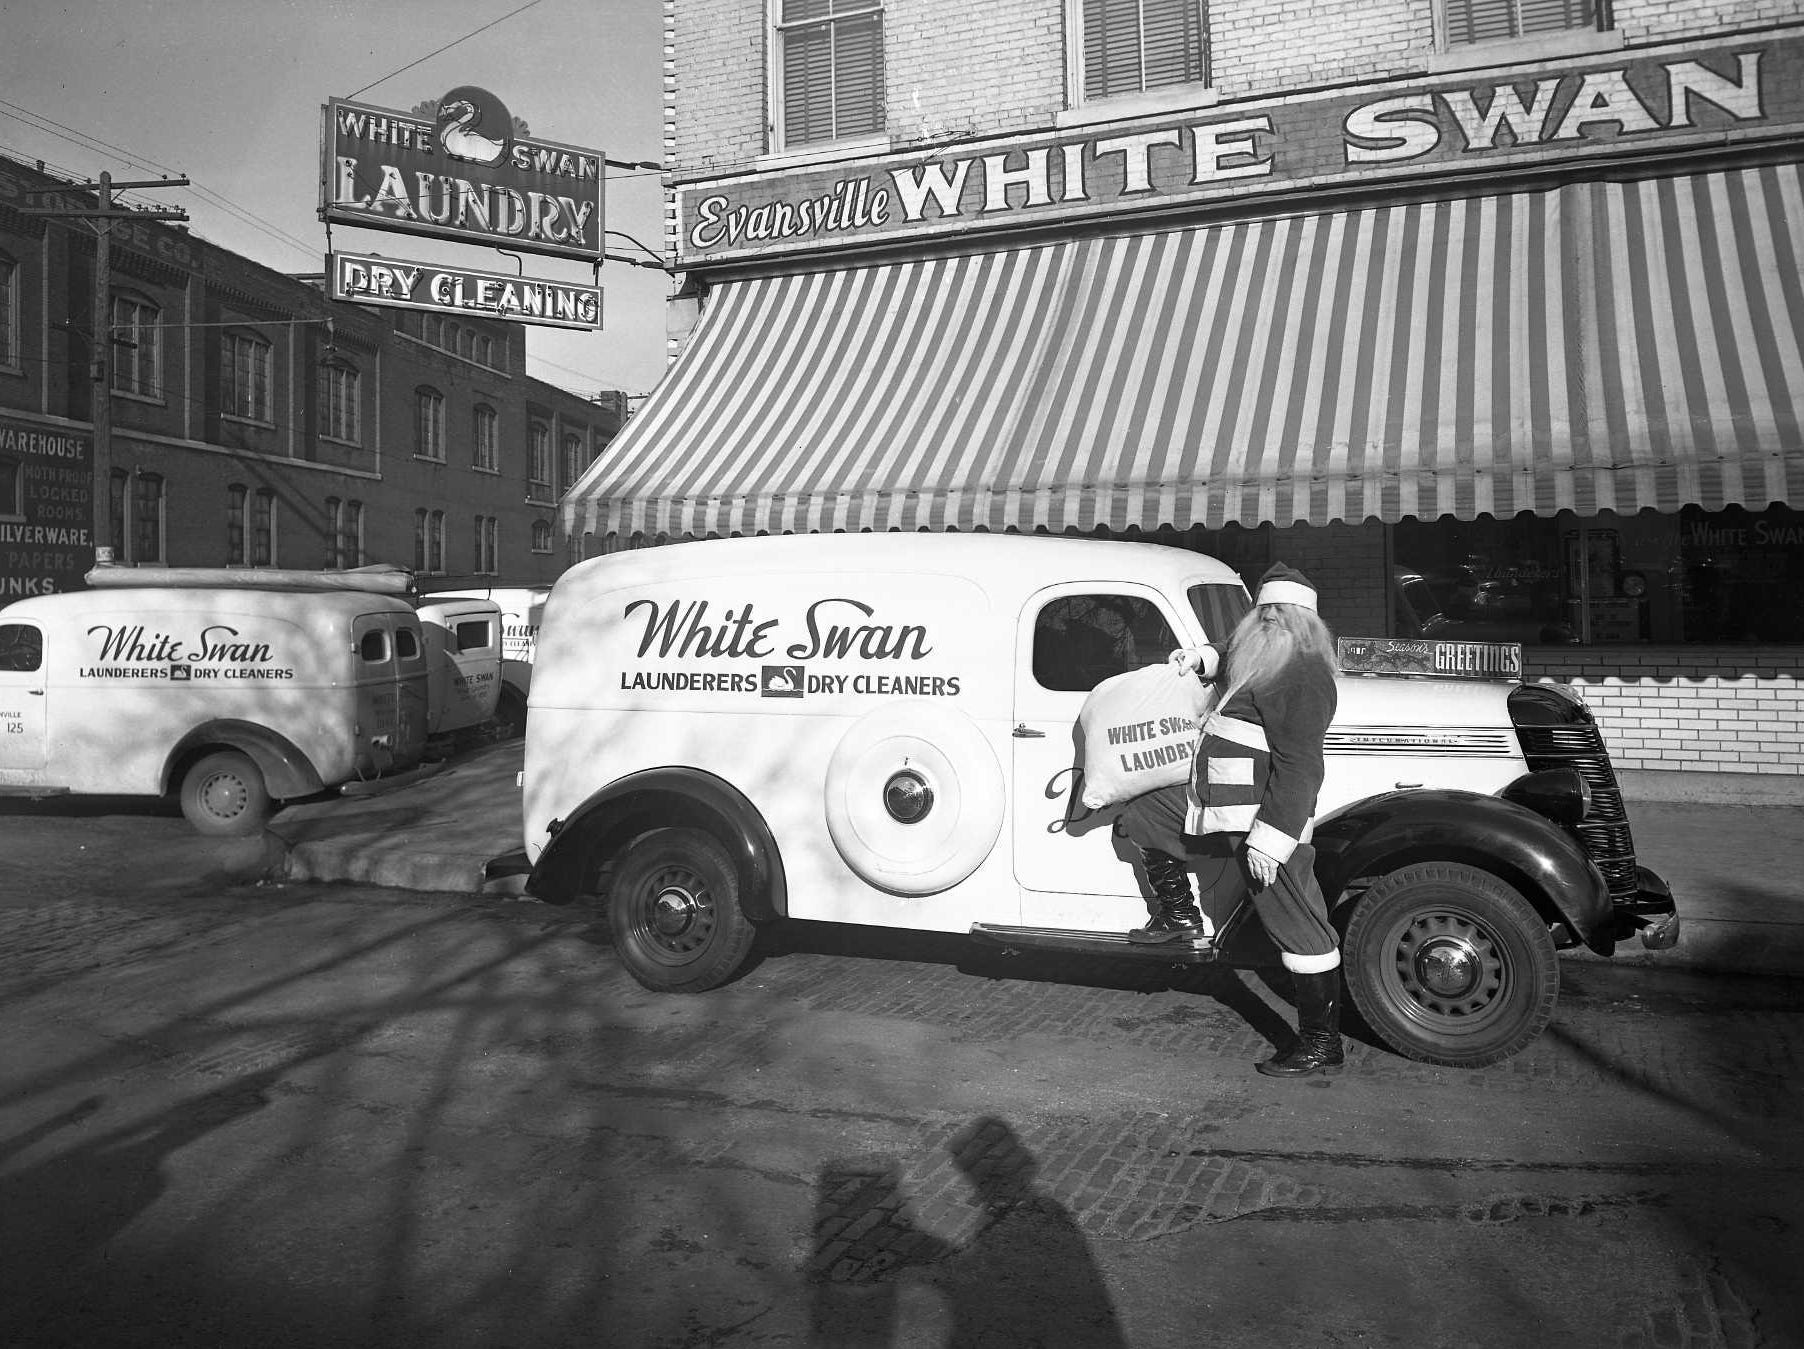 History Lesson is a pictorial history of Evansville provided by Patricia Sides, an archivist with Willard Library Santa Claus Visits White Swan Laundry This image was used in an advertisement for White Swan Laundry in December 1937, which touted its delivery service as a Christmas gift for her. Santa prepares to inaugurate the first of 52 visits the company's routemen were scheduled to make in 1938. At four cents per pound of laundry, the weekly service was a timesaving bargain for busy housewives throughout the year. The company was located at NW Second and Ingle streets for many decades after its founding in 1893, when it became one of the first professional steam laundries to open in Evansville. It soon boasted more than 100 employees and 17 motor routes, eventually expanding its services to customers in Henderson, Ky. The business was sold in 1980, and the building was razed in 1996. (Photographer: Edgar Newman)